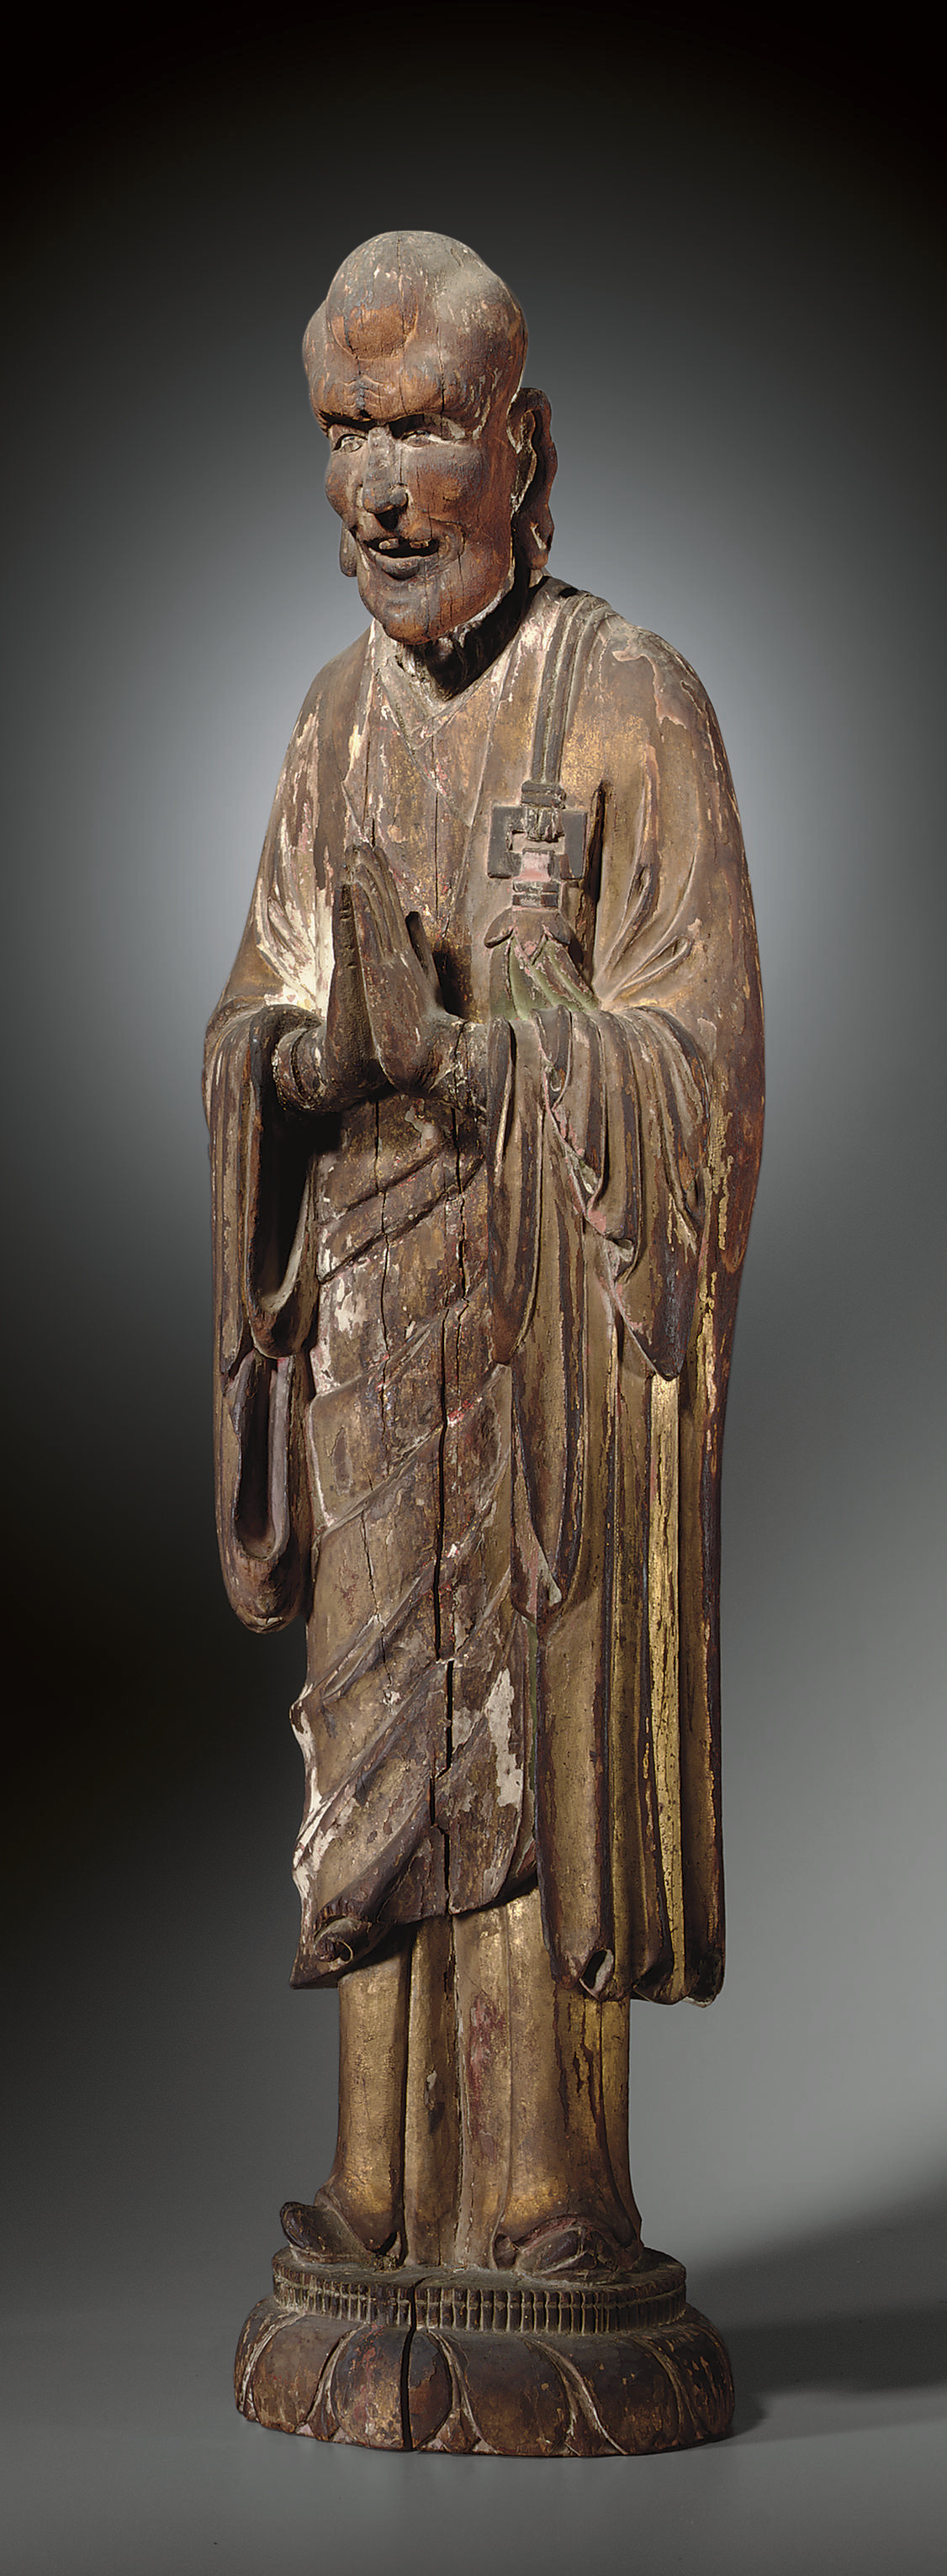 AN UNUSUAL CARVED WOOD FIGURE